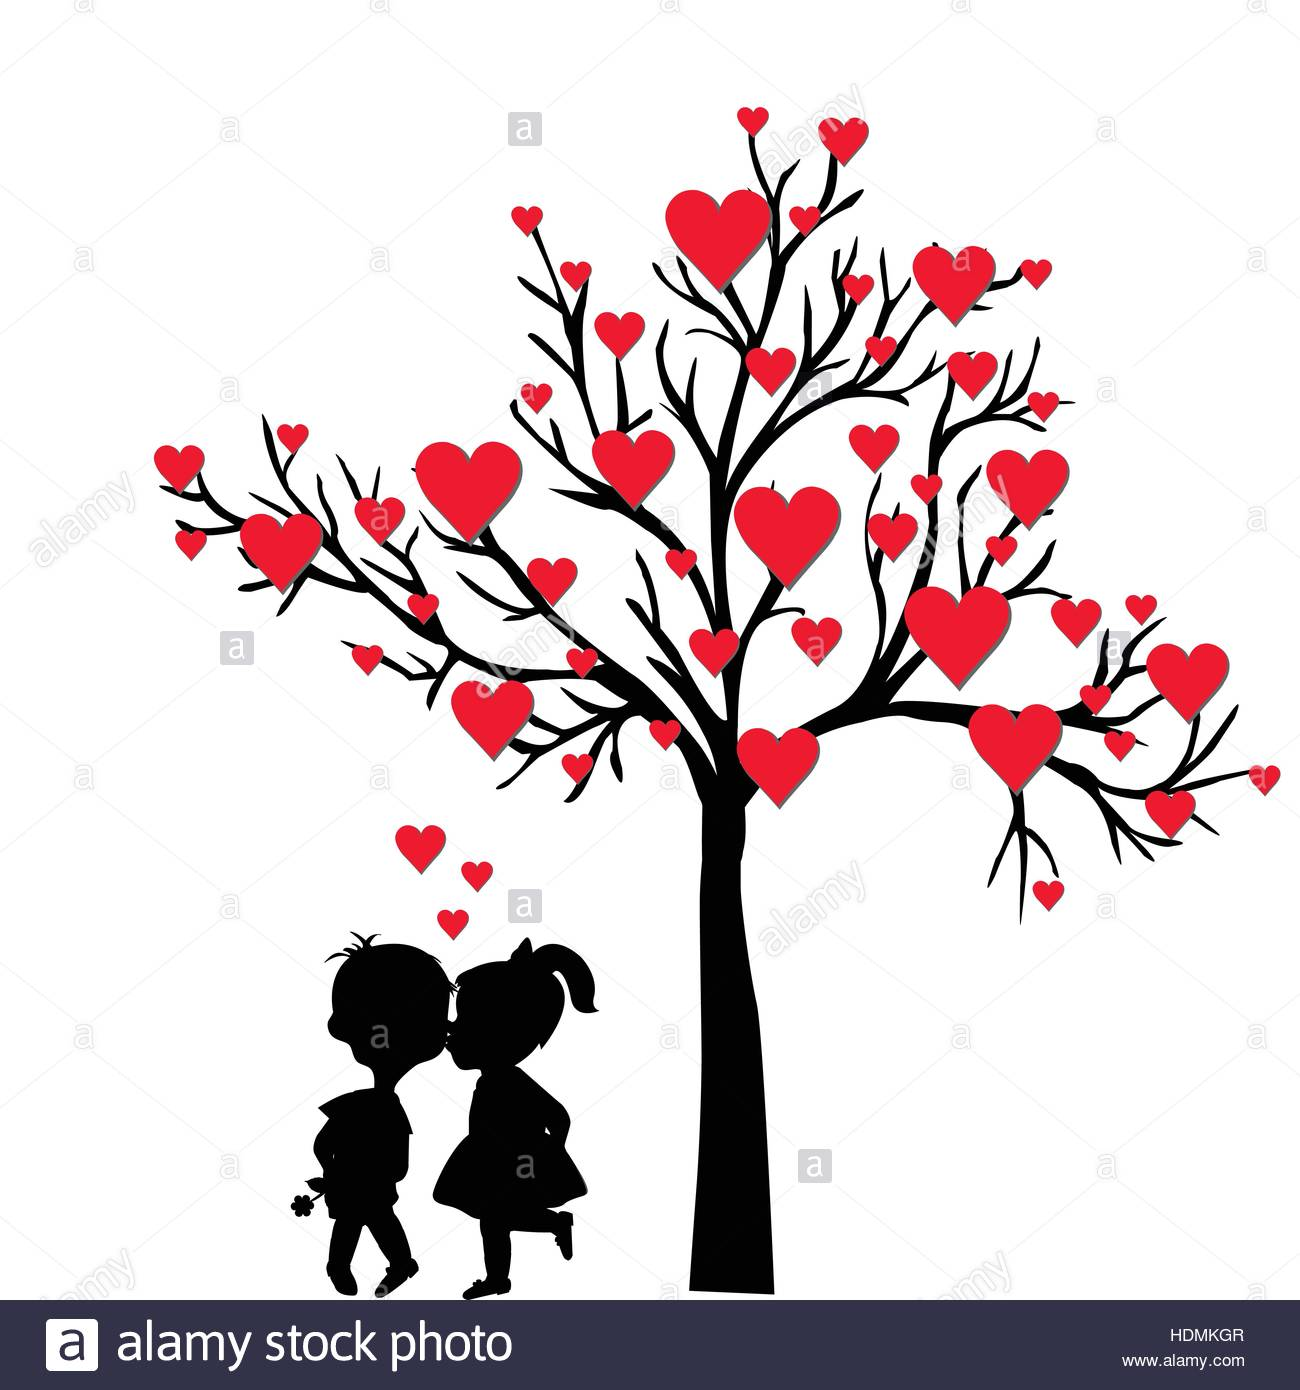 Greeting Valentine S Day Card With Tree Of Hearts And Kids Kissing